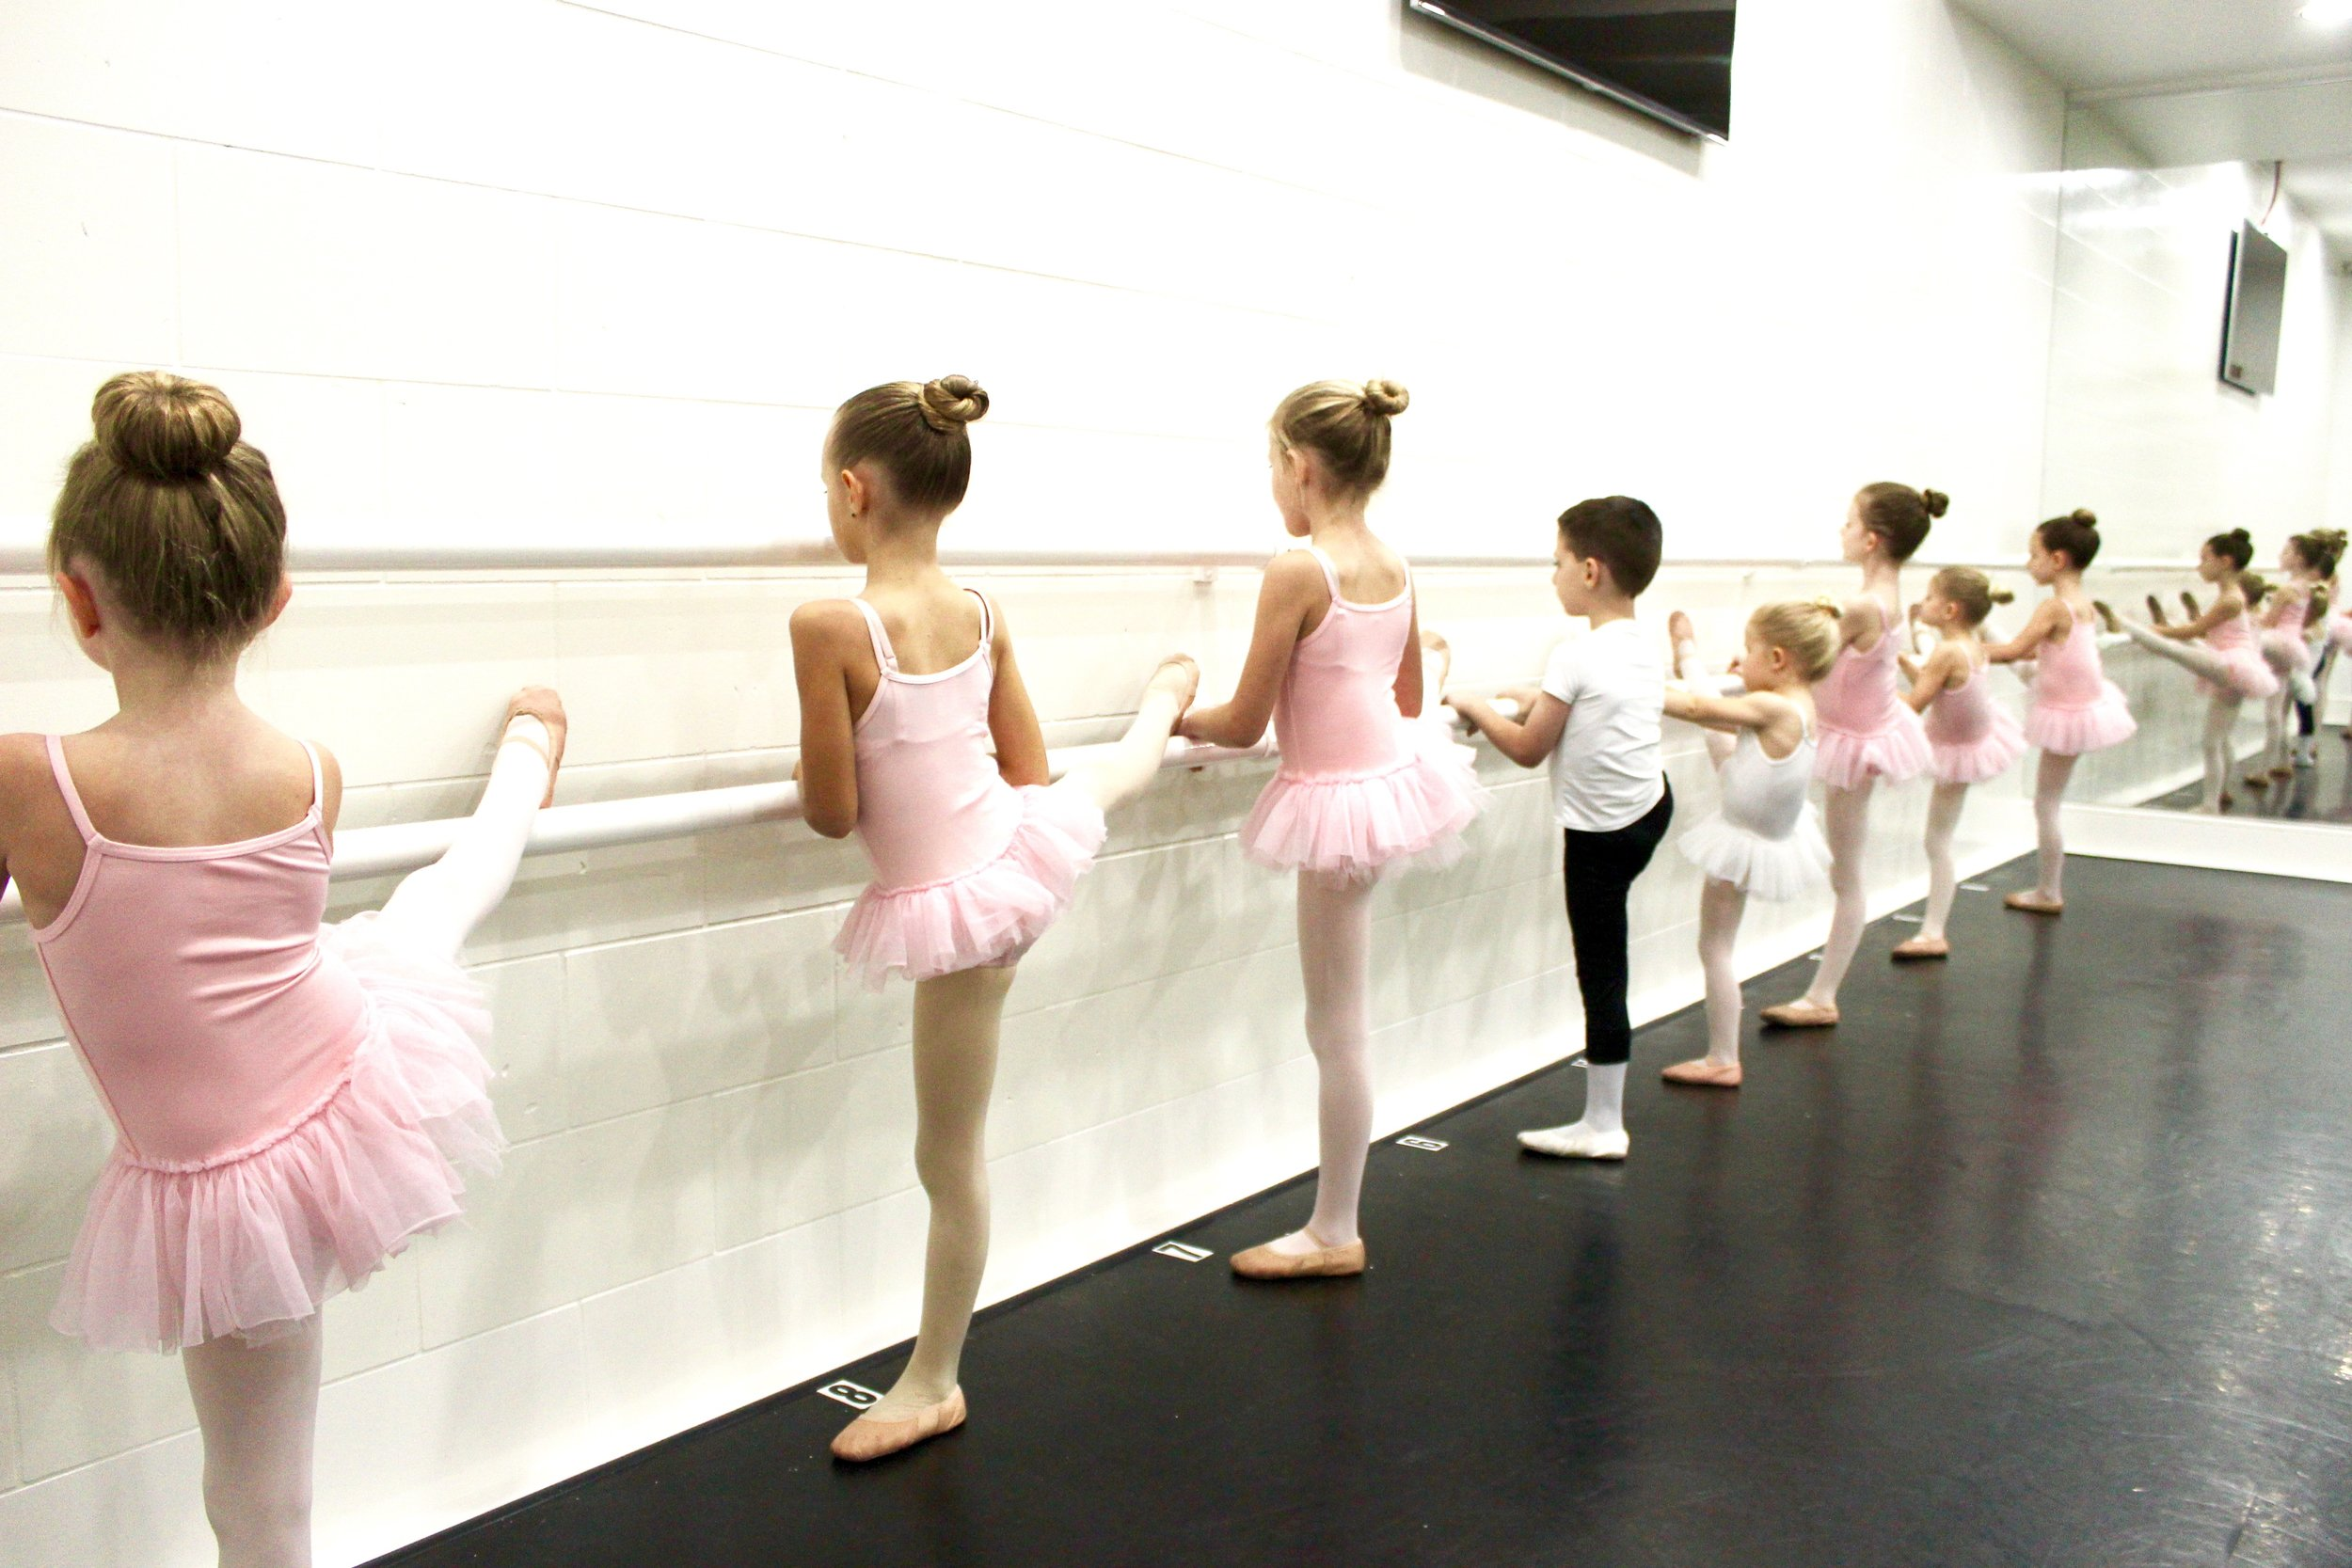 Students continue to gain the love of dance through creative movement. Pre-Division B provides longer ballet training for students with more focus and stamina.